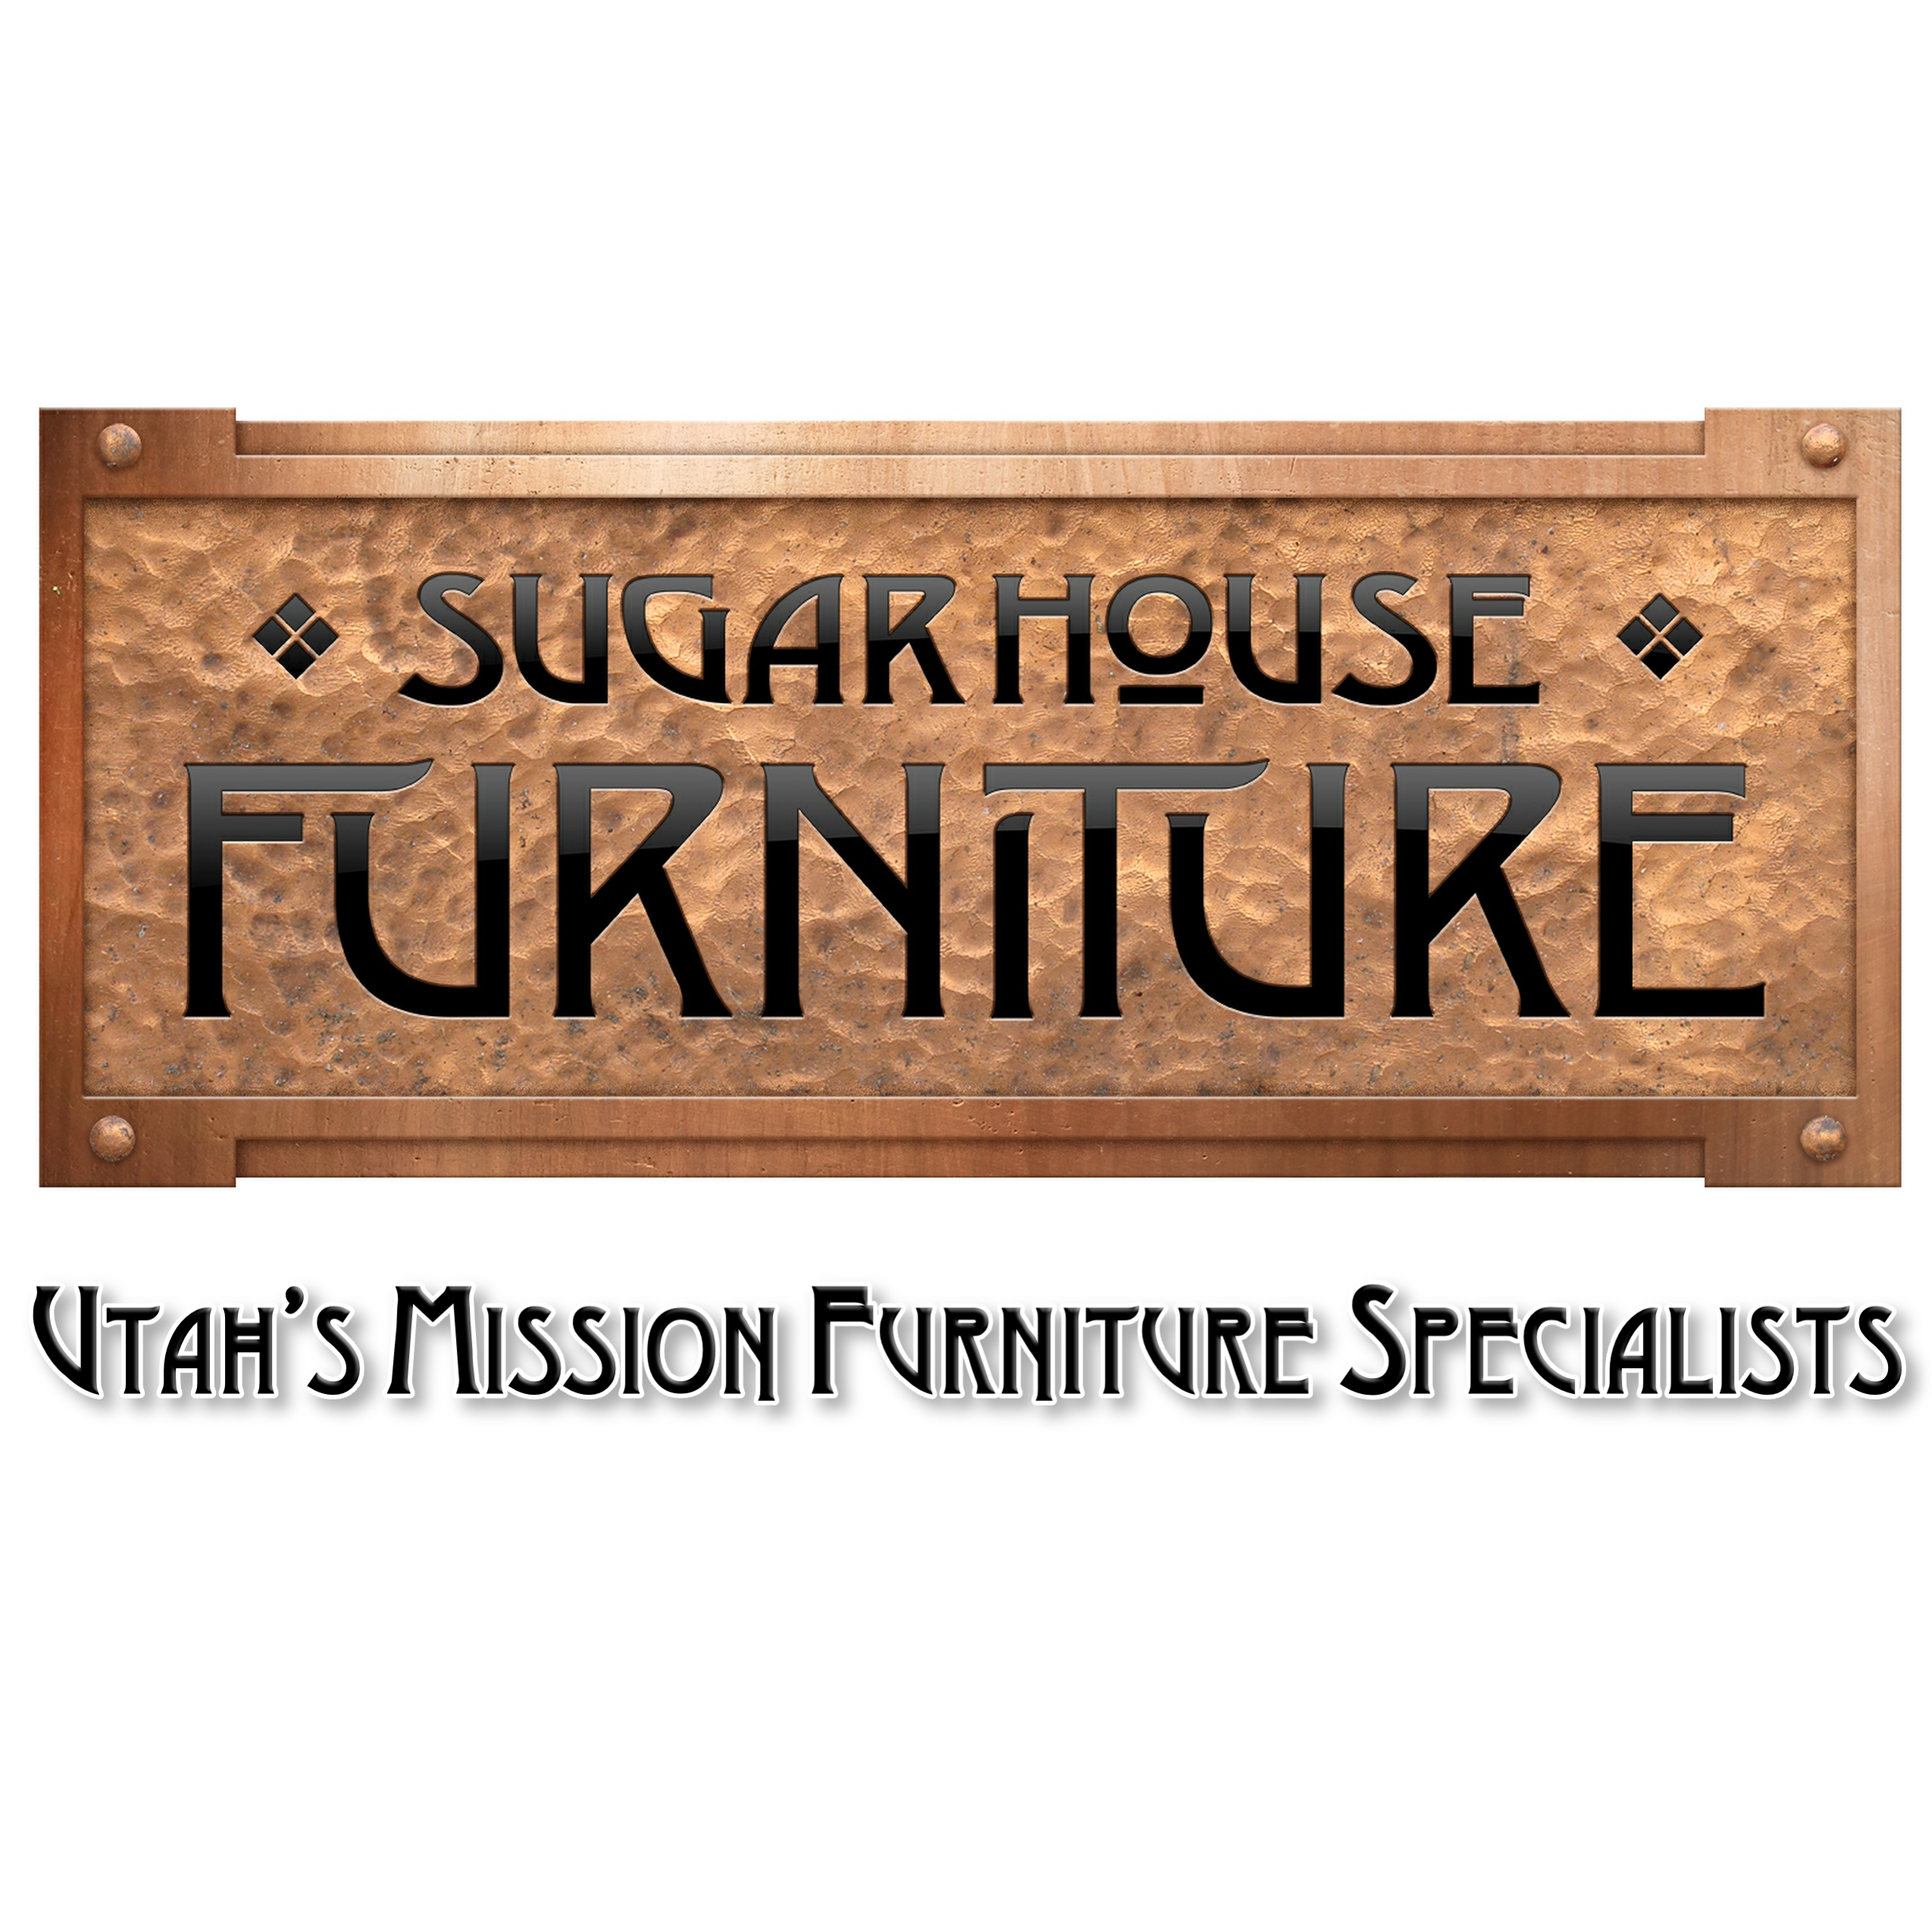 Sugarhouse Furniture 2892 S Highland Dr Salt Lake City Ut 84106 Yp Com